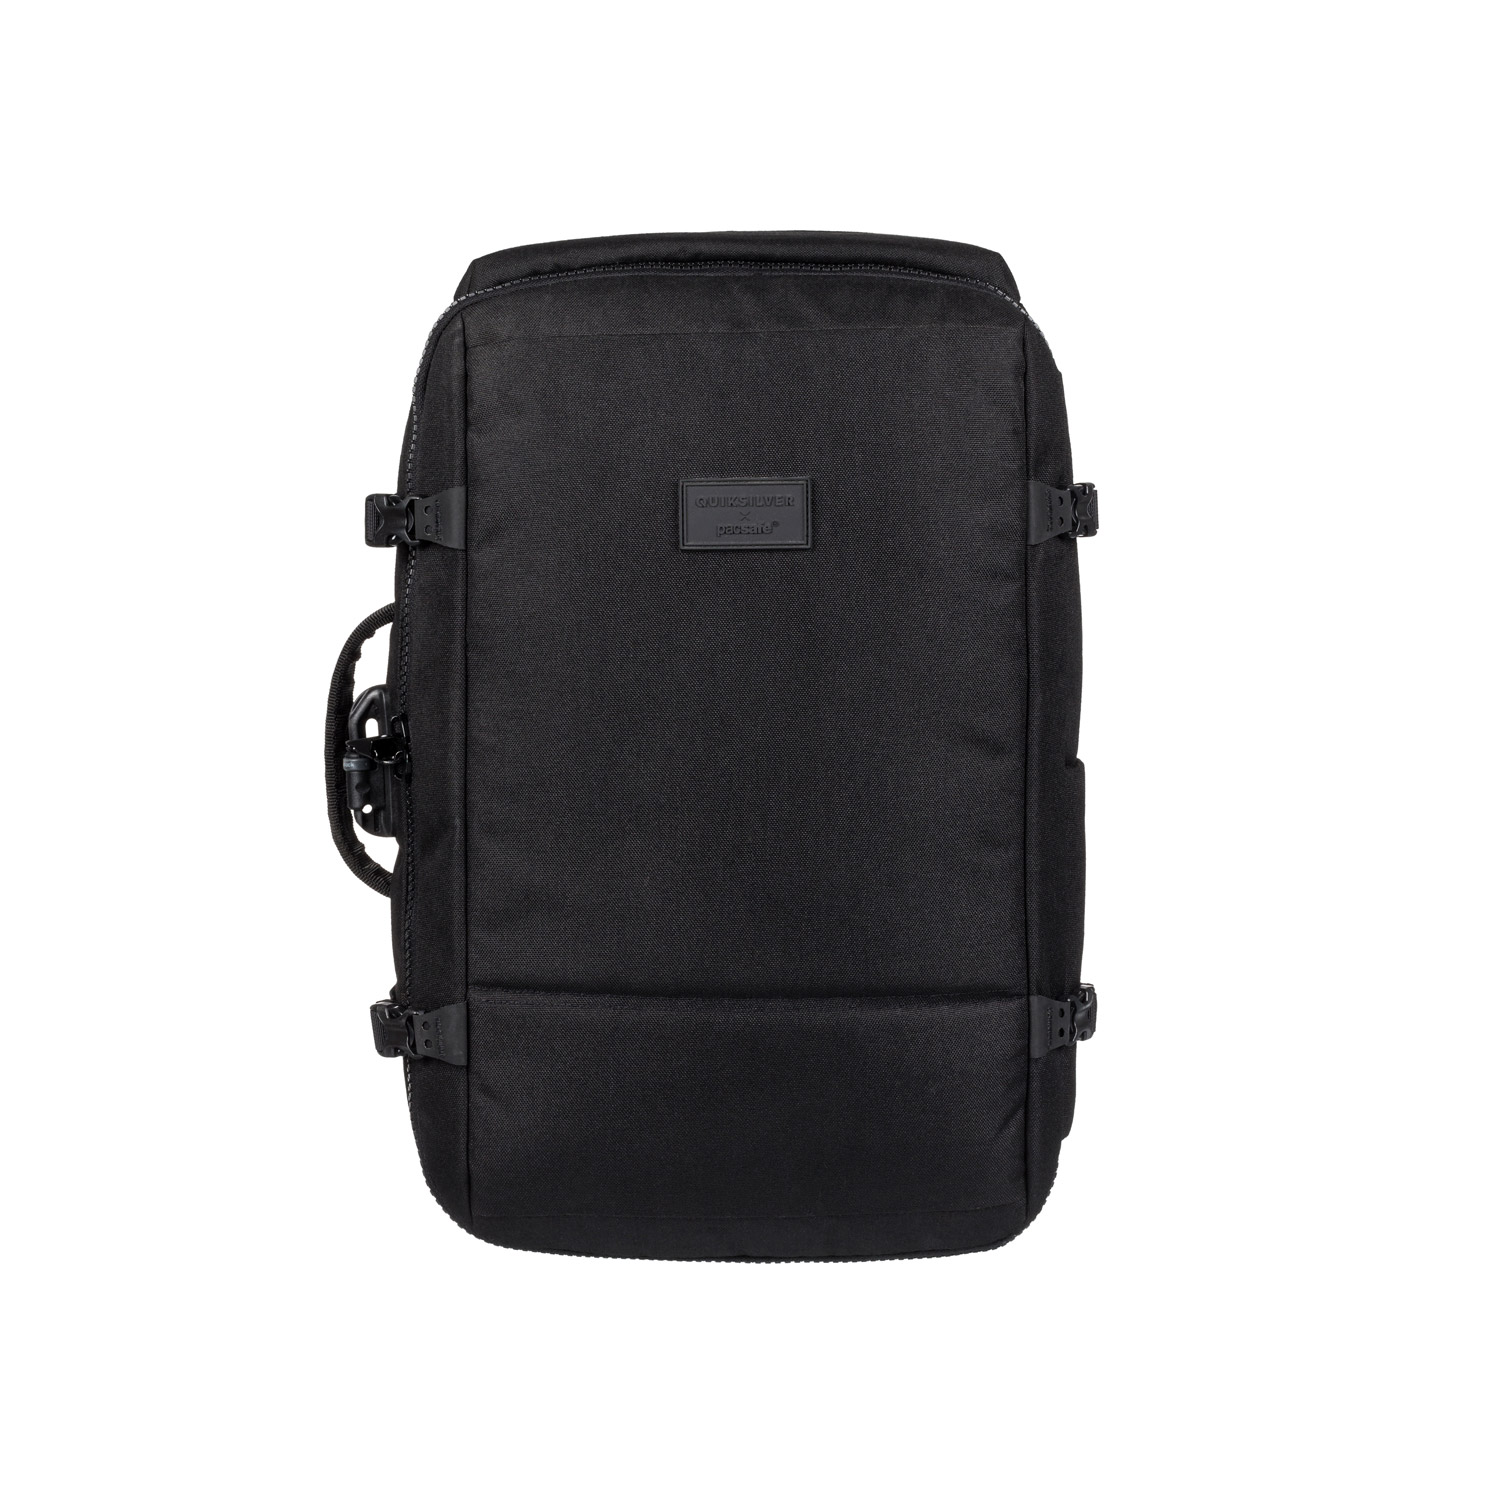 Quicksilver x PacSafe Anti-Theft Backpack